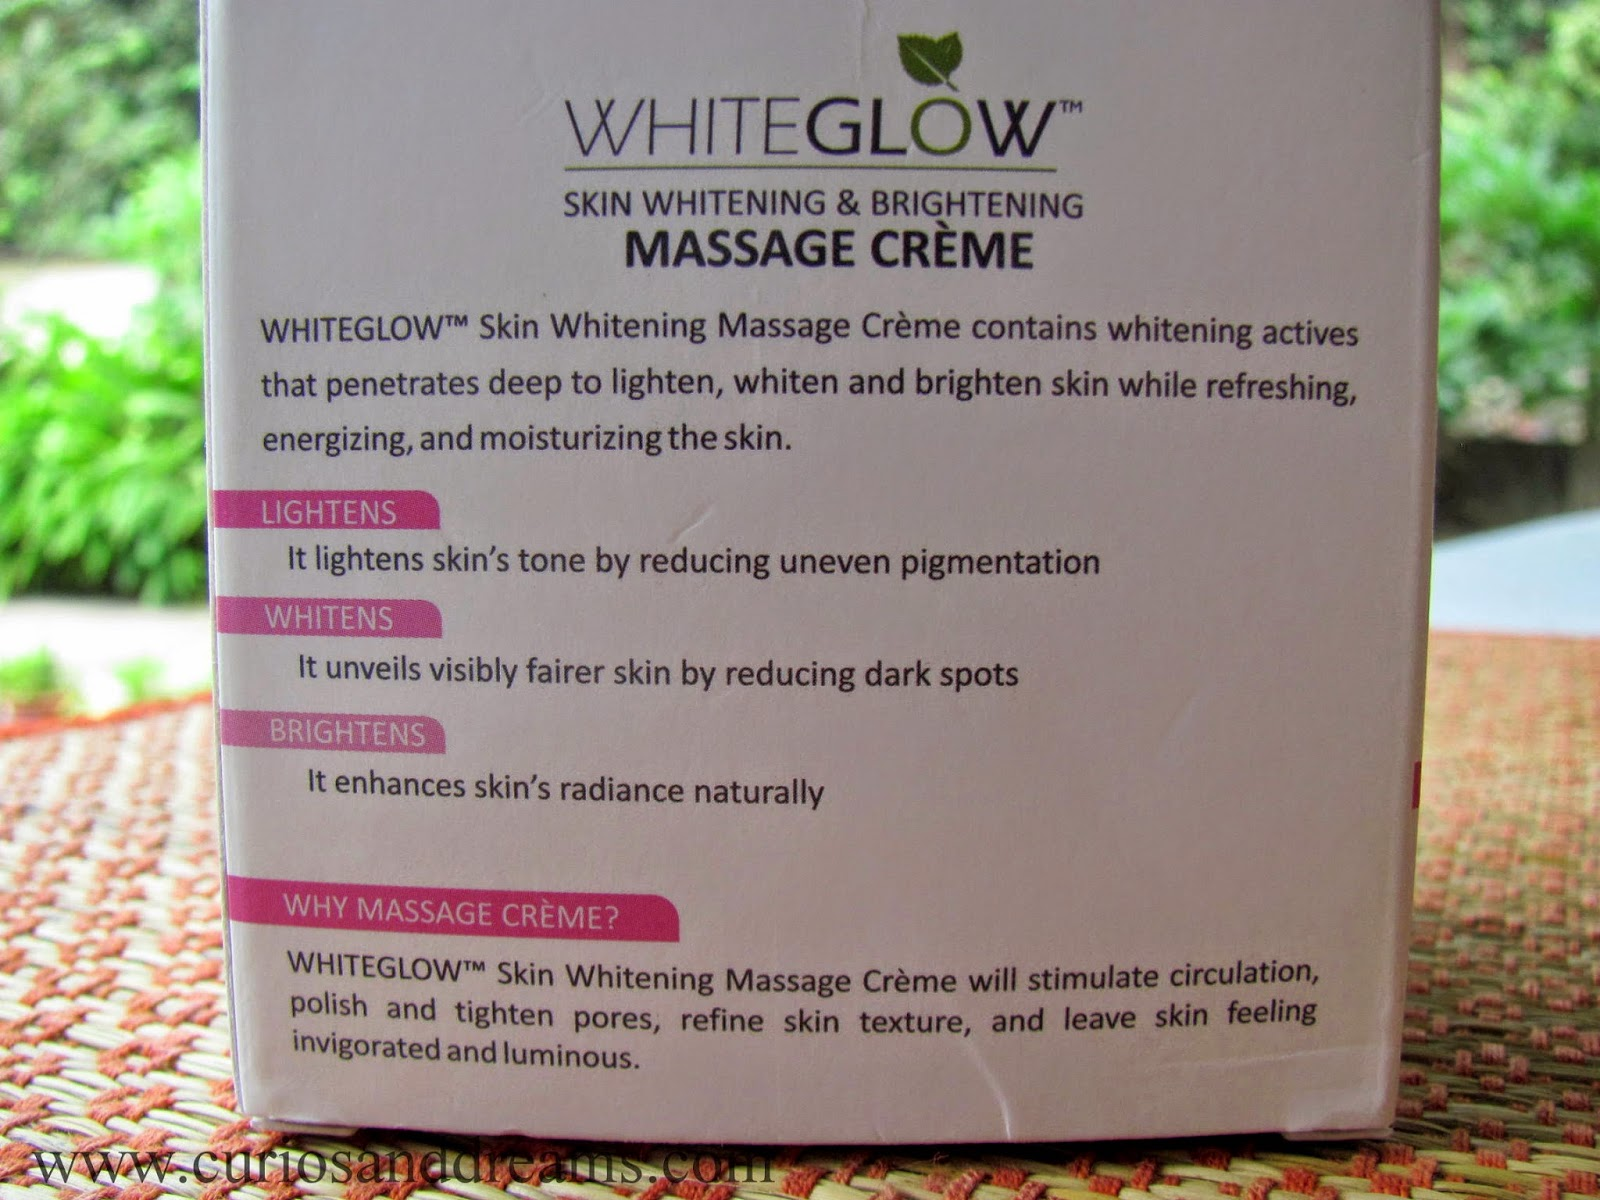 Lotus Herbals Whiteglow Massage Creme Review